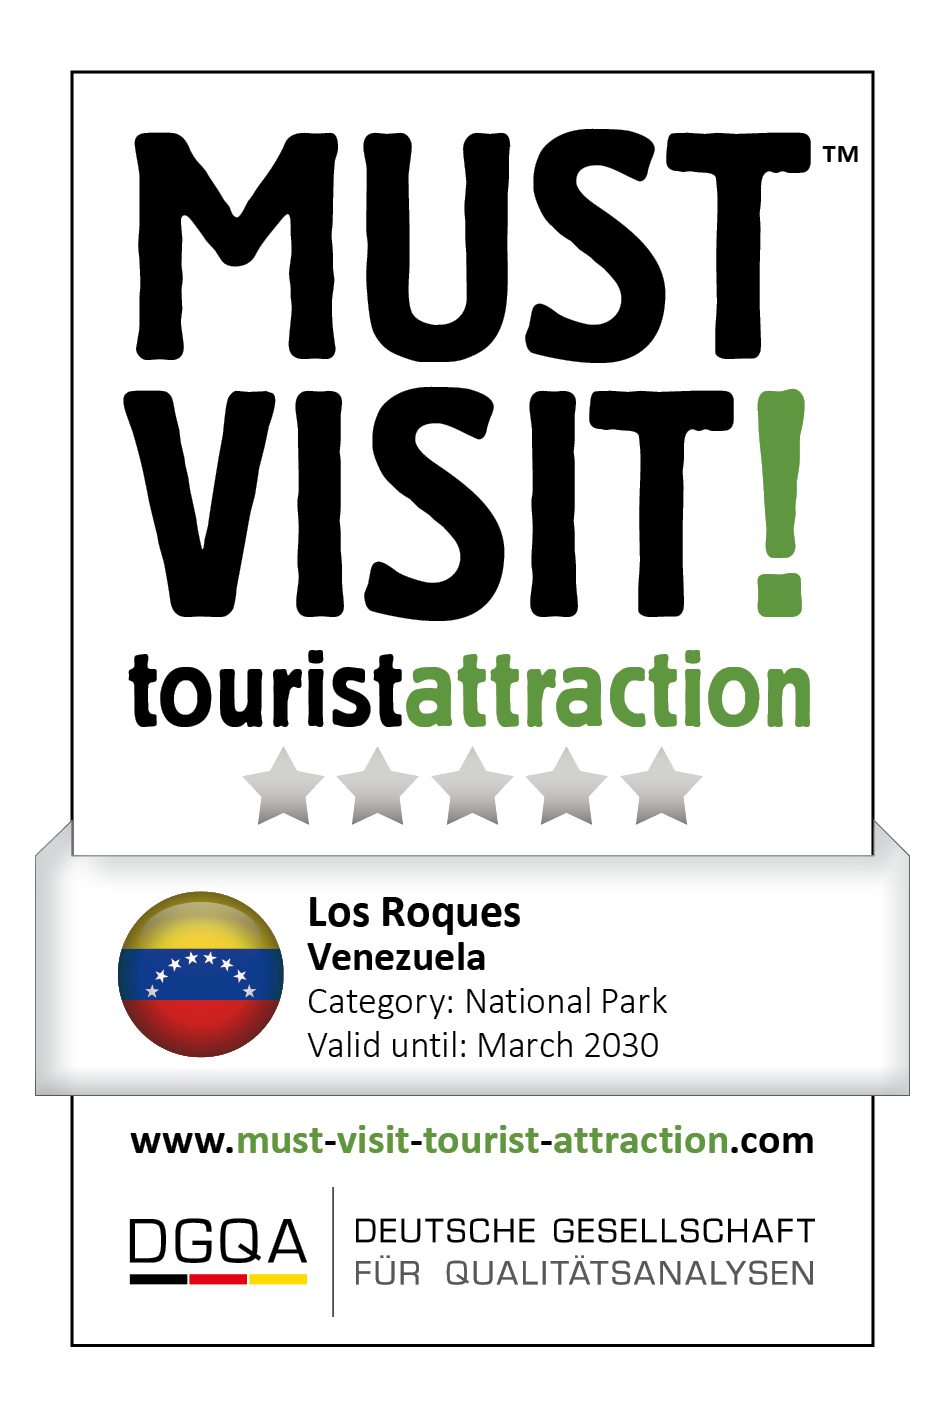 MUST VISIT! tourist attraction (dgqa) los roques